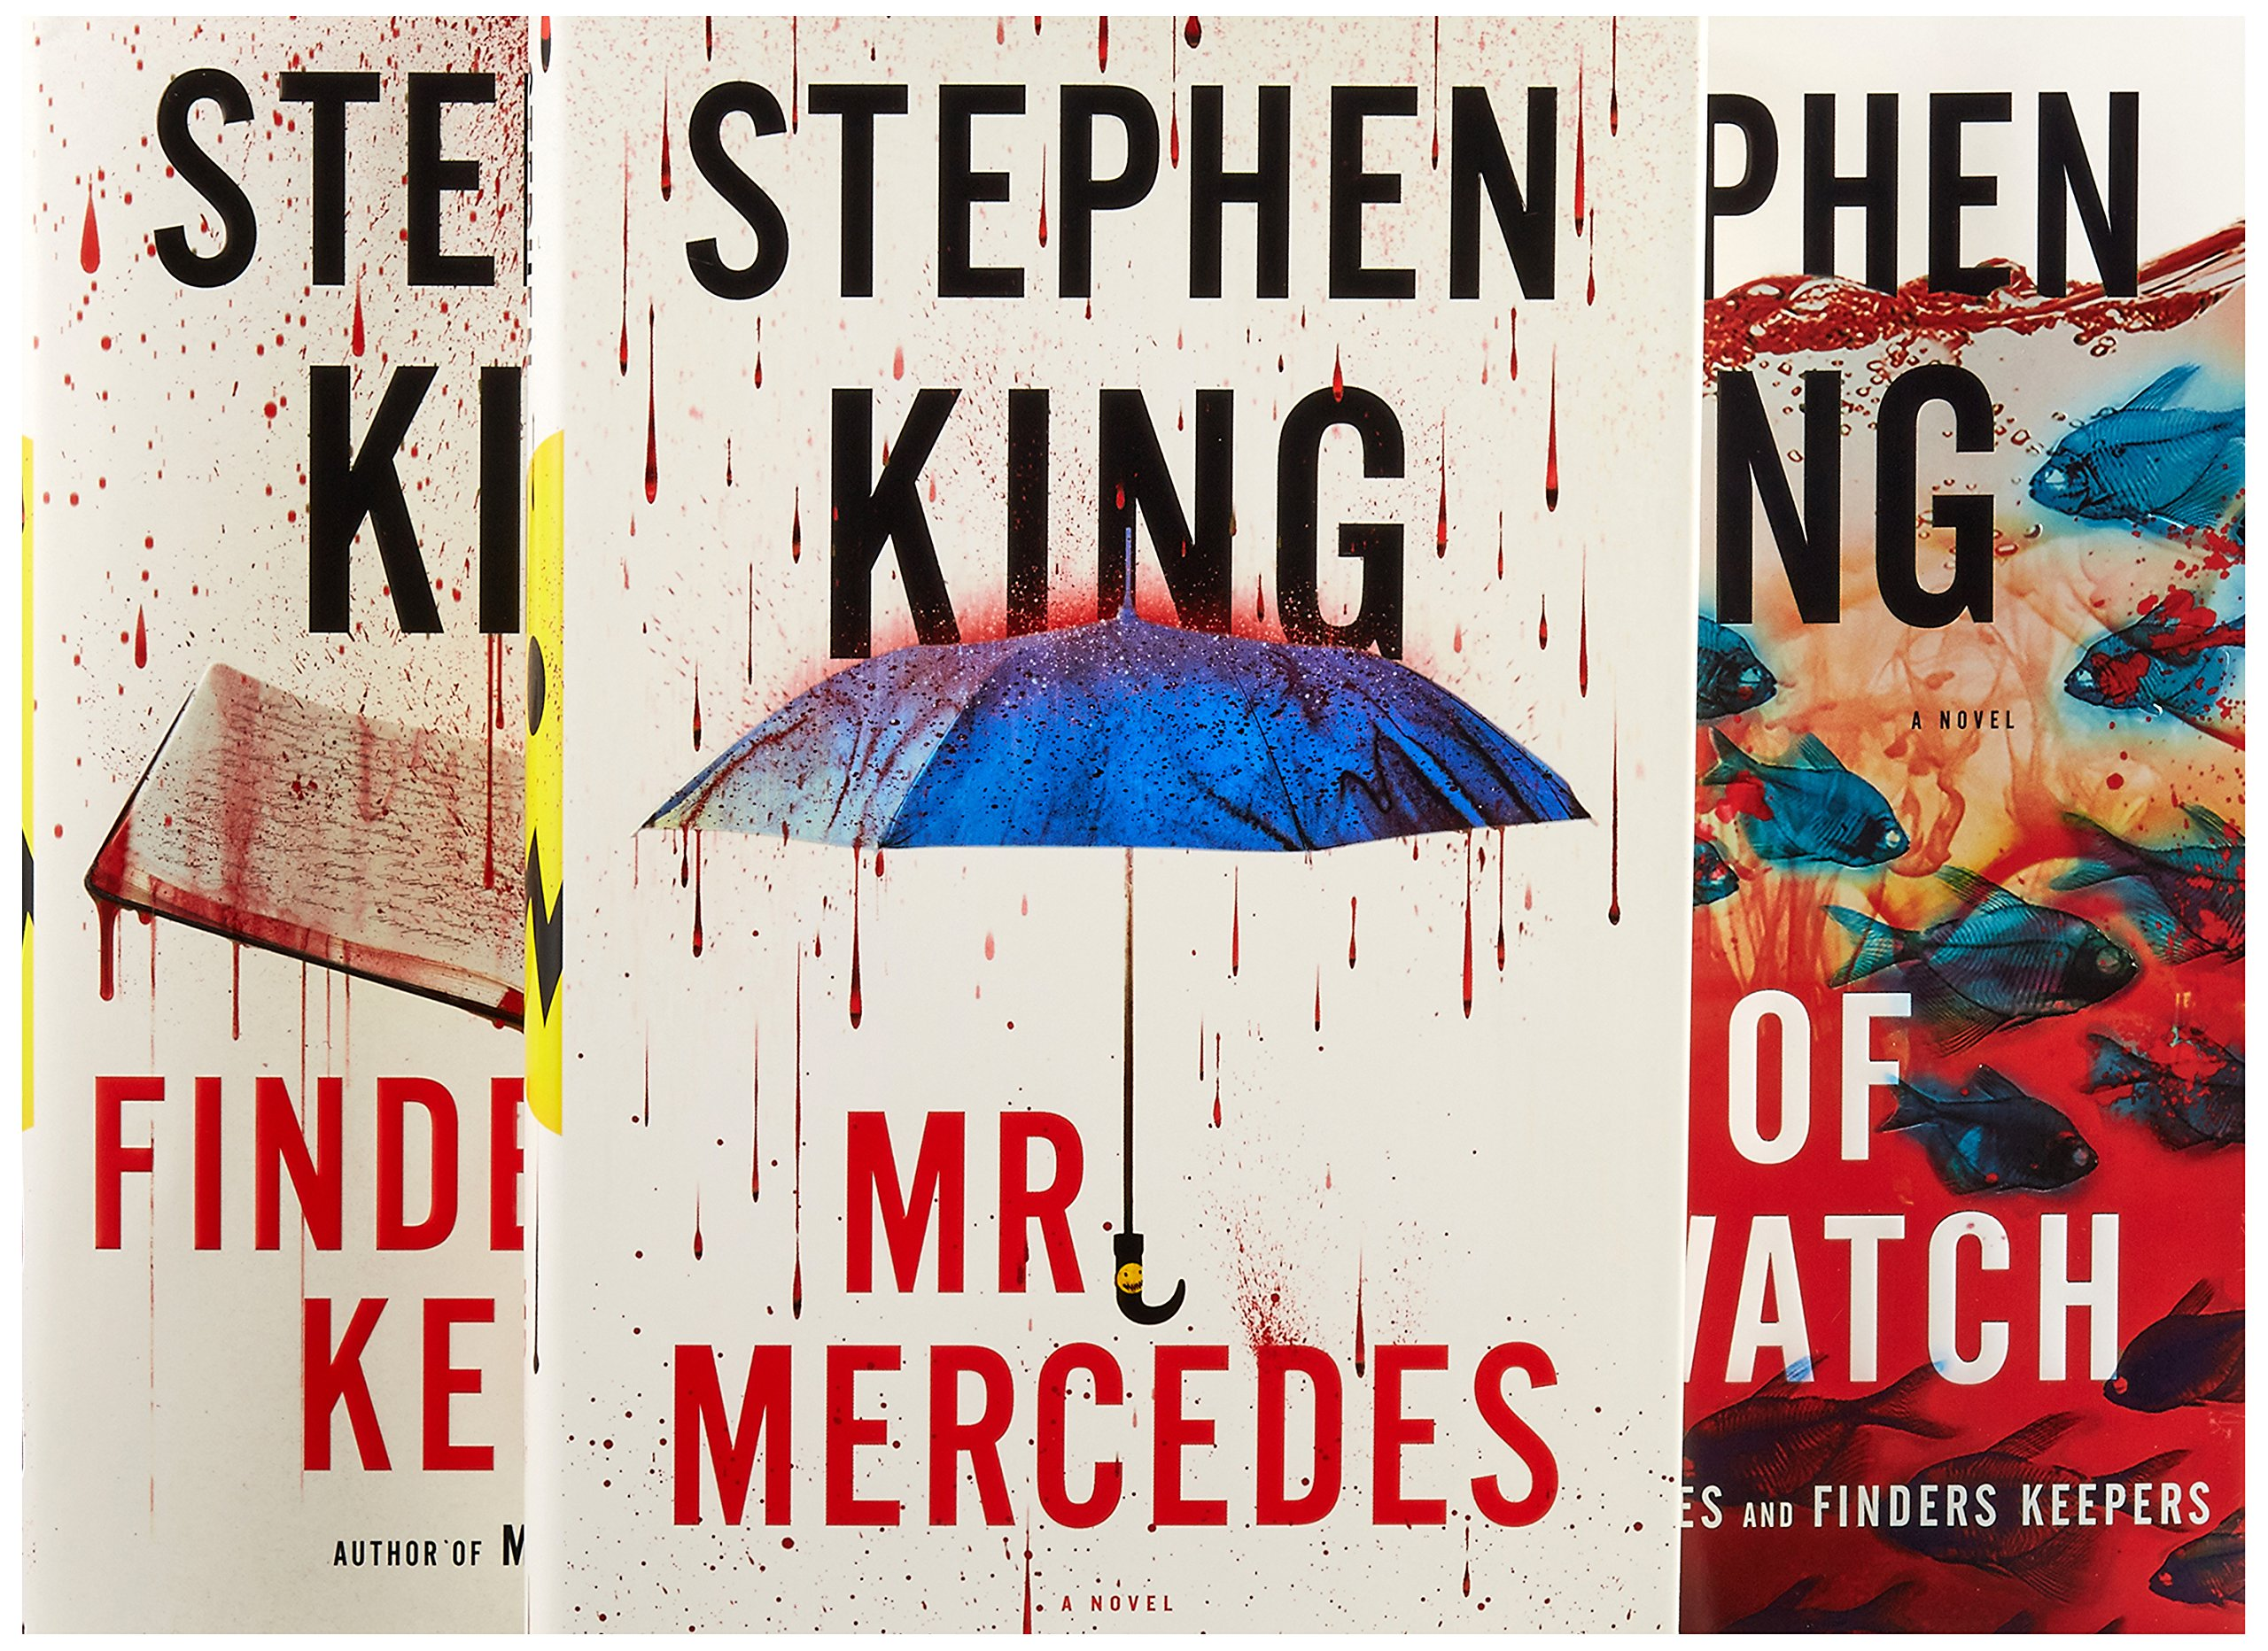 The Bill Hodges Trilogy Boxed Set: Mr. Mercedes, Finders Keepers, and End of Watch by Scribner